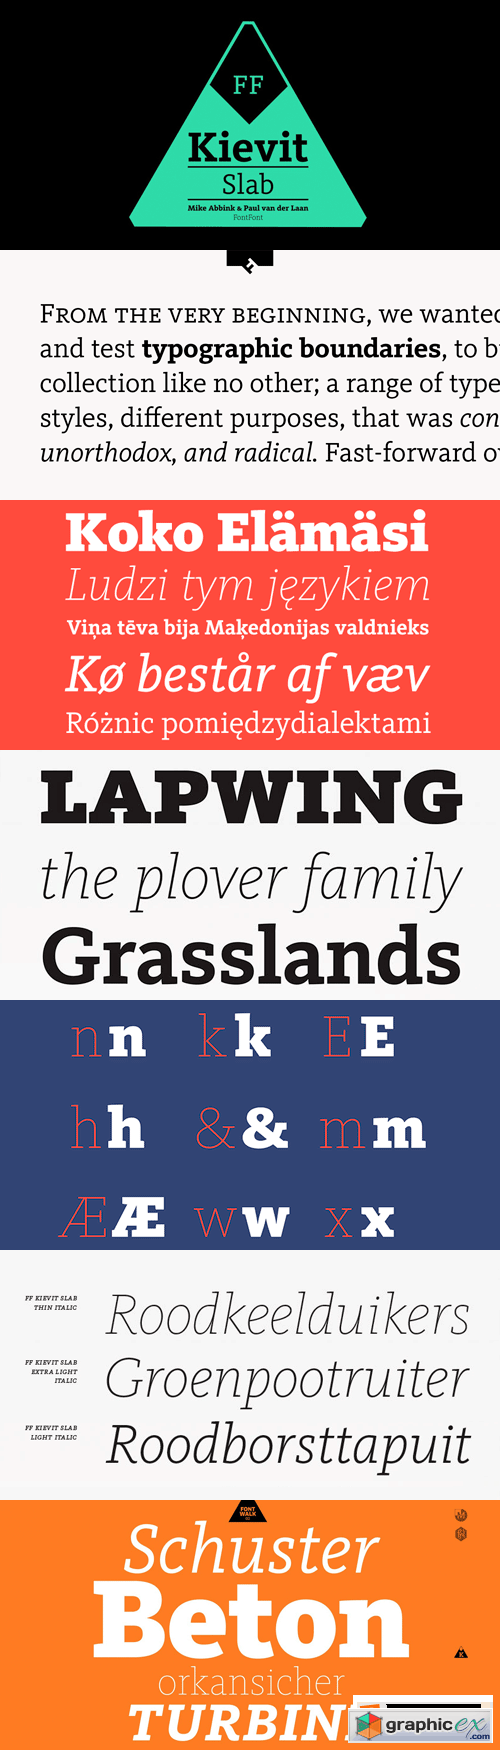 FF Kievit Slab Font Family - 18 Fonts for $659